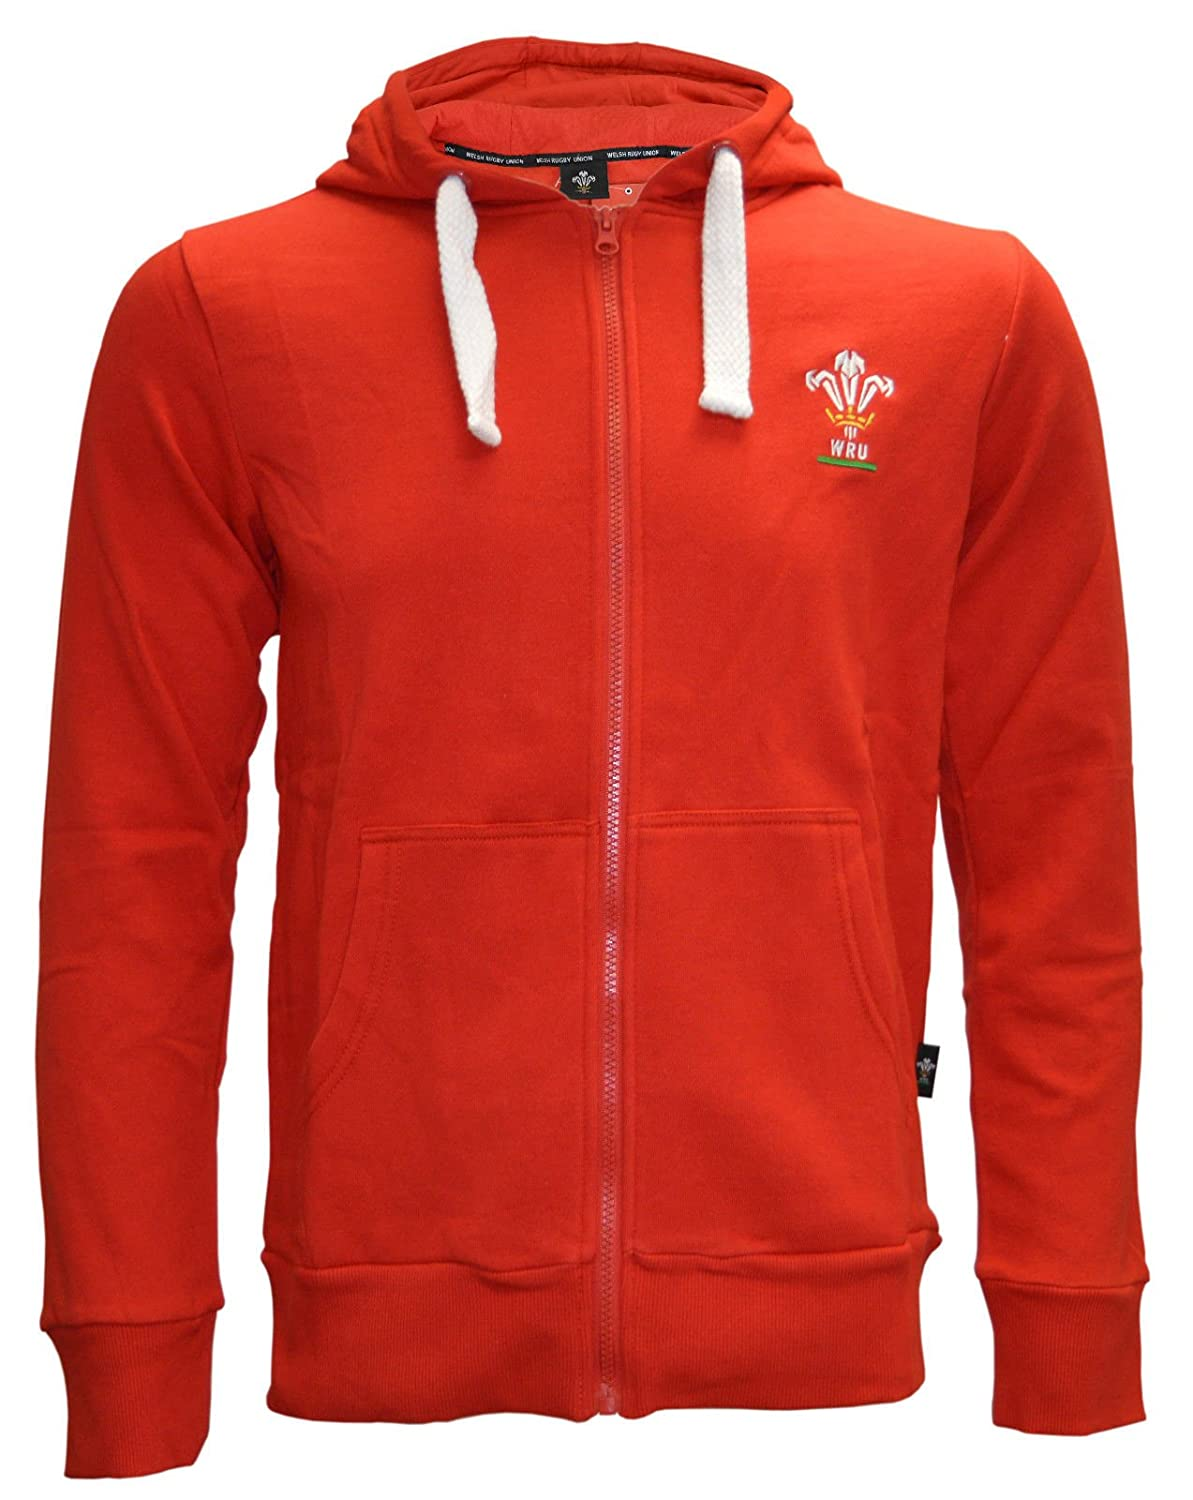 2dec0844ad5 NEW MENS WOMENS WELSH WALES ZIP UP OFFICIAL WRU RUGBY WARM RED HOODIE TOP  W-023: Amazon.co.uk: Clothing